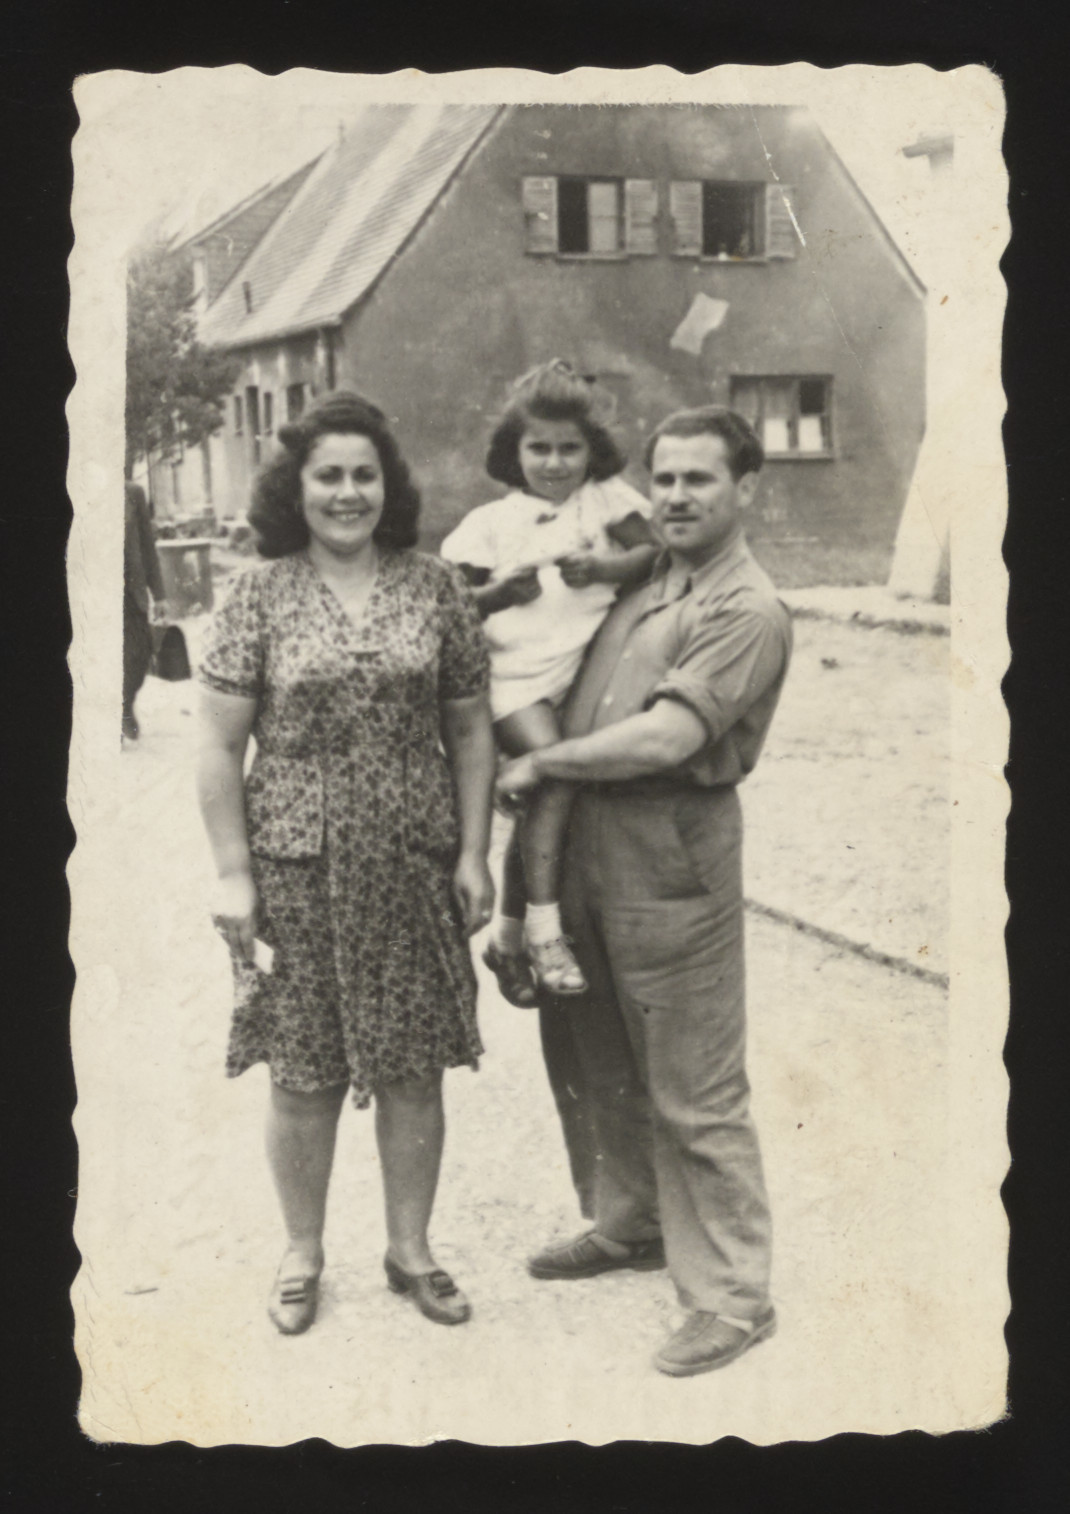 """Portrait of a Jewish couple and their daughter standing in front of a home in Thorn (Torun).  Pictured are Genia and Chil Heniek Szabason.  The caption reads """"To my dear cousin on the day we left Thorn, from Heniek."""""""